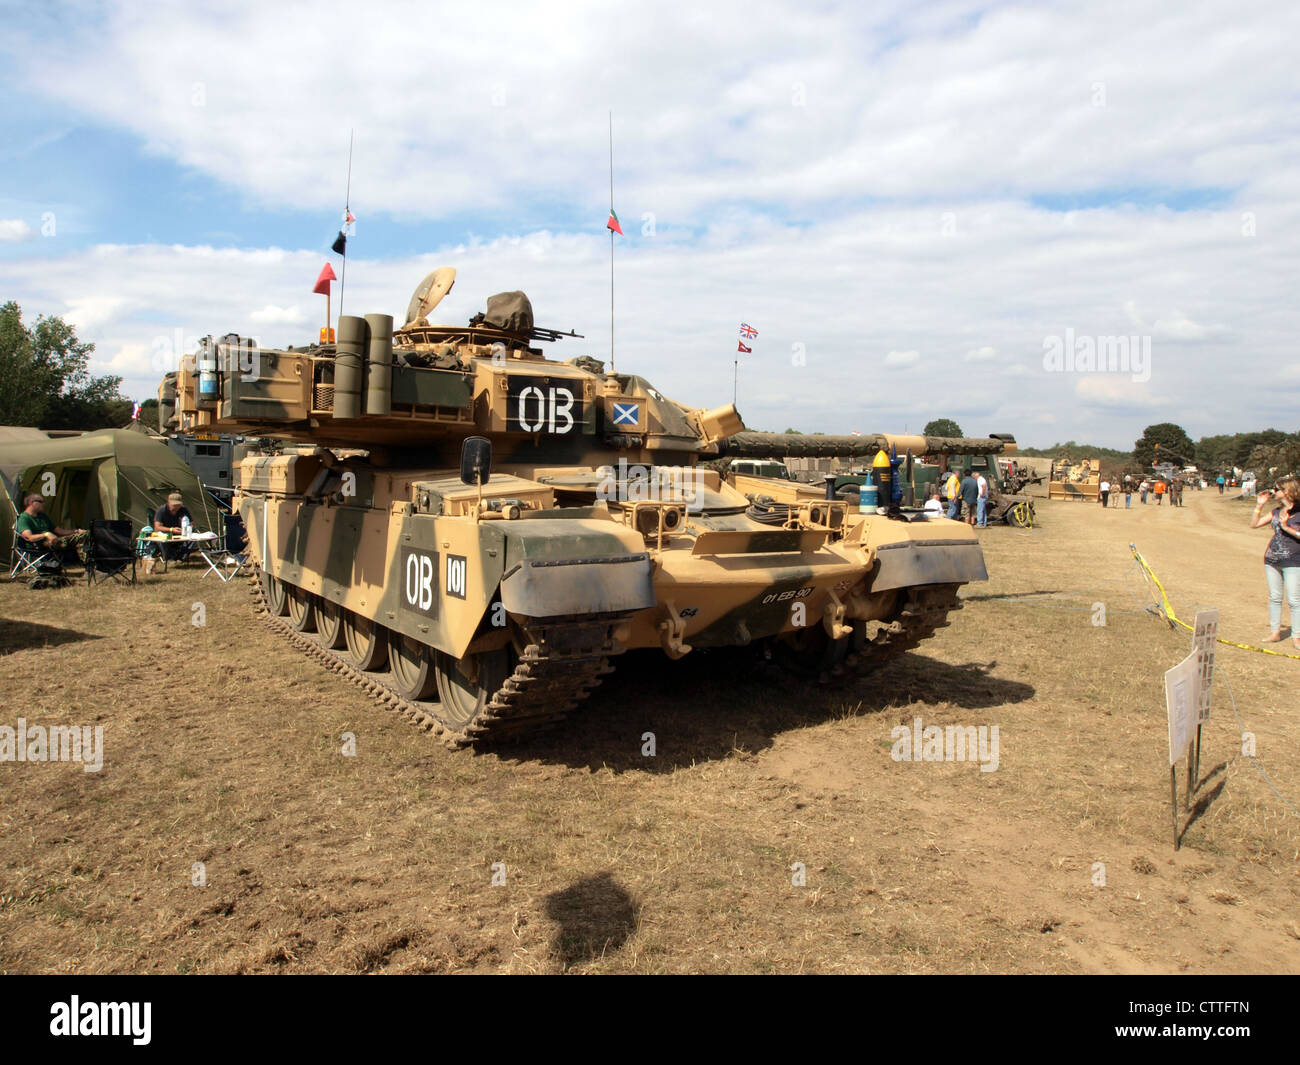 Chieftain MkII of the Royal Scots Dragoon Guards - Stock Image